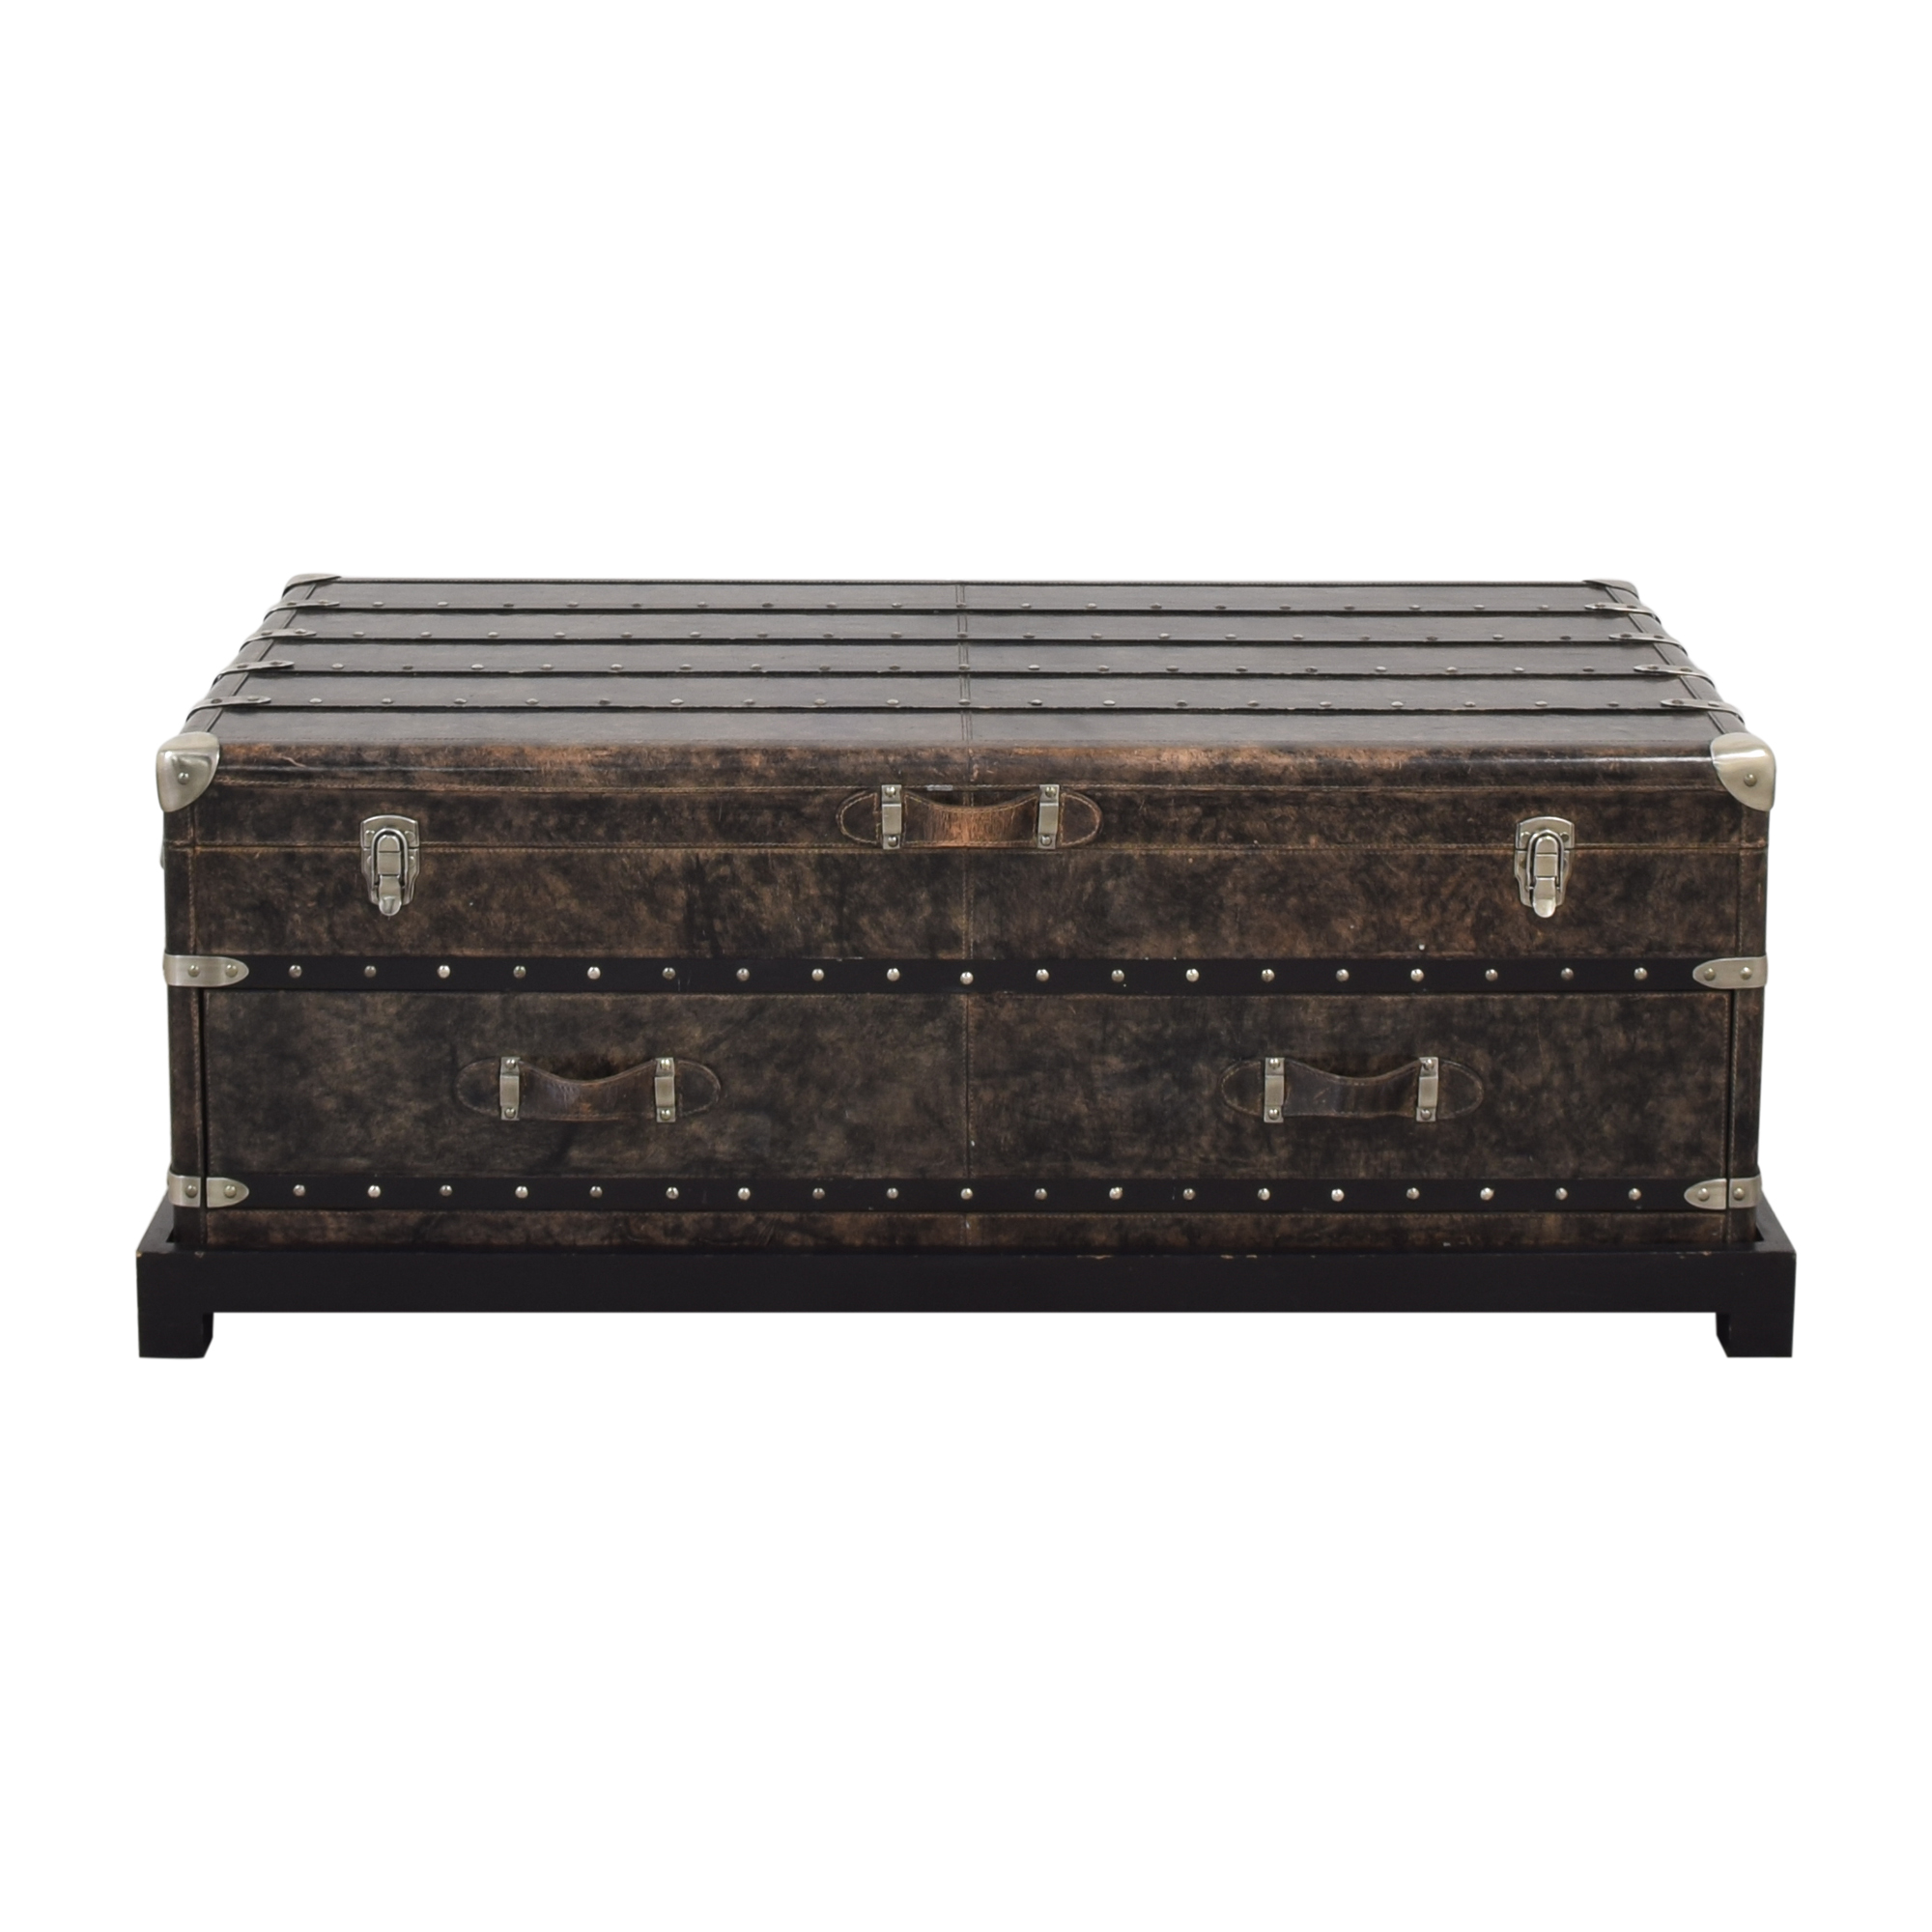 Arhaus Trunk Coffee Table sale